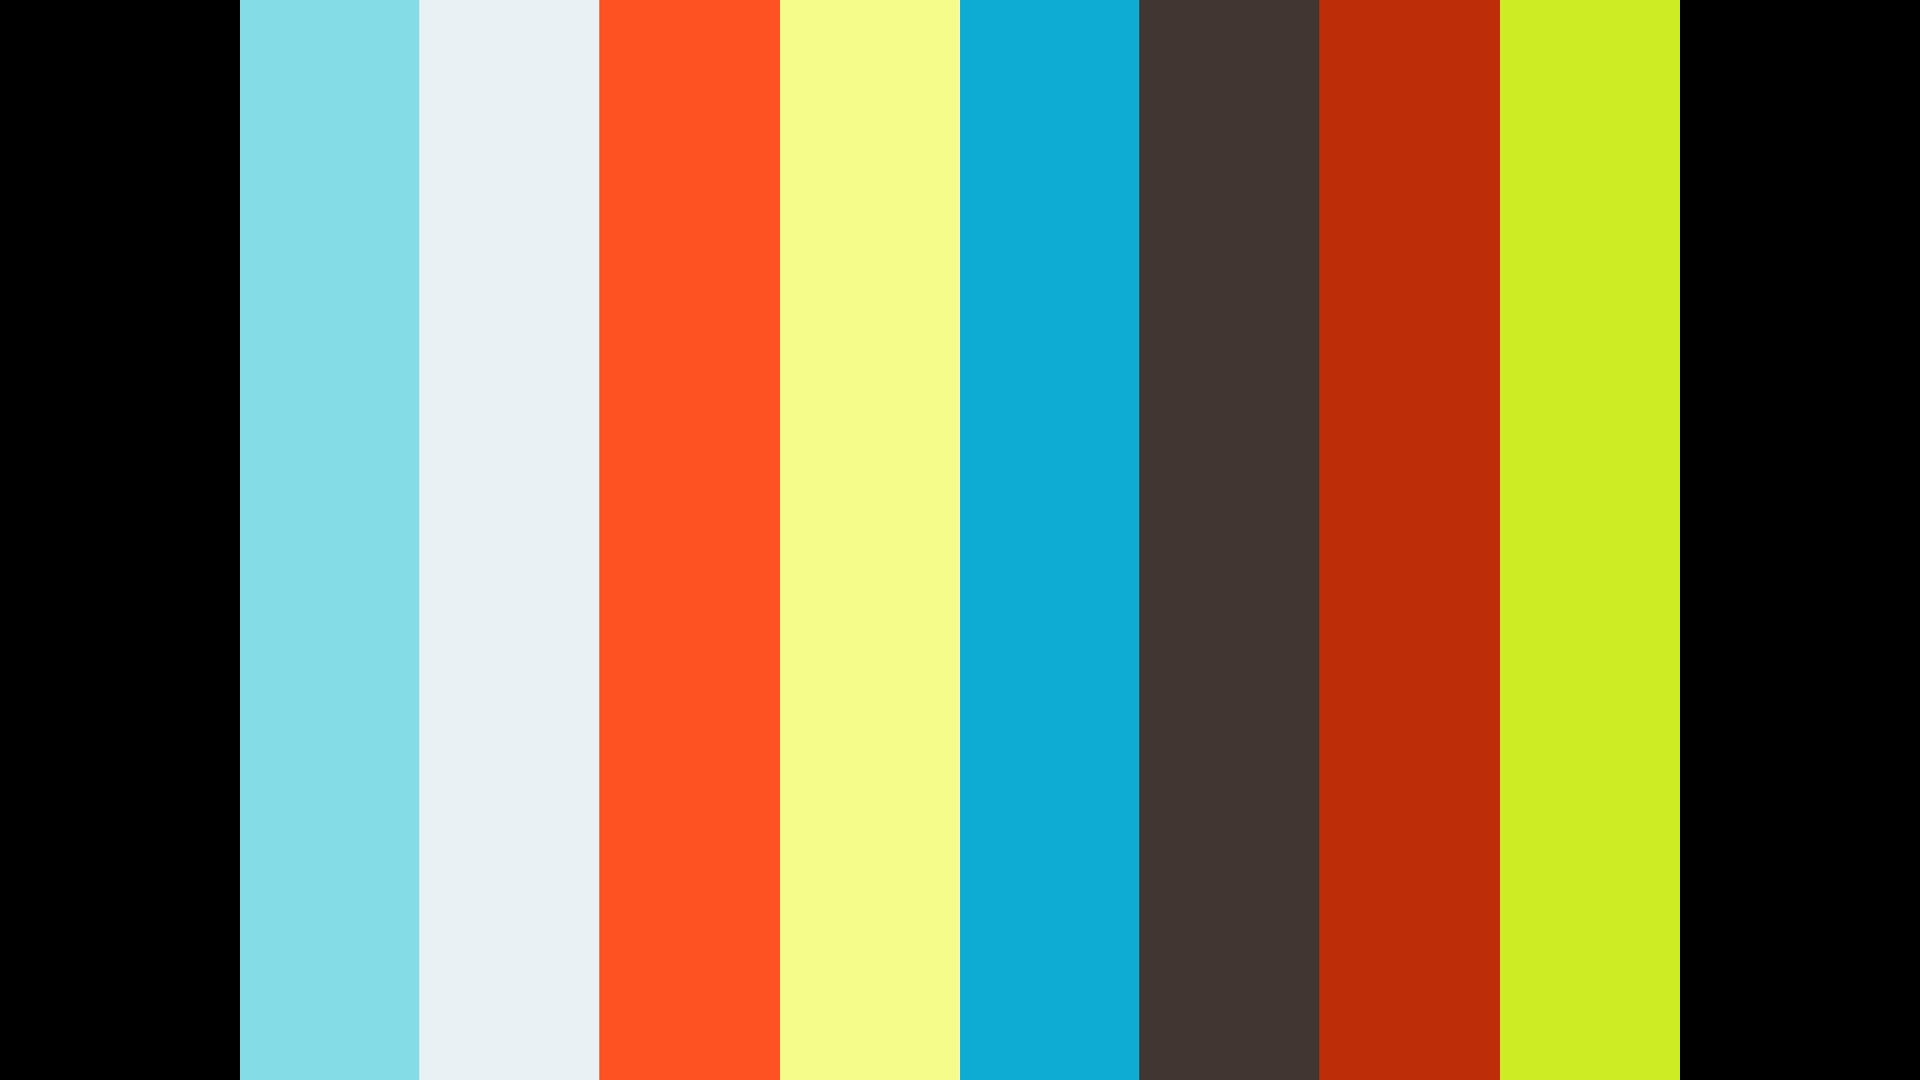 Talk by Hans-Jörg Rheinberger